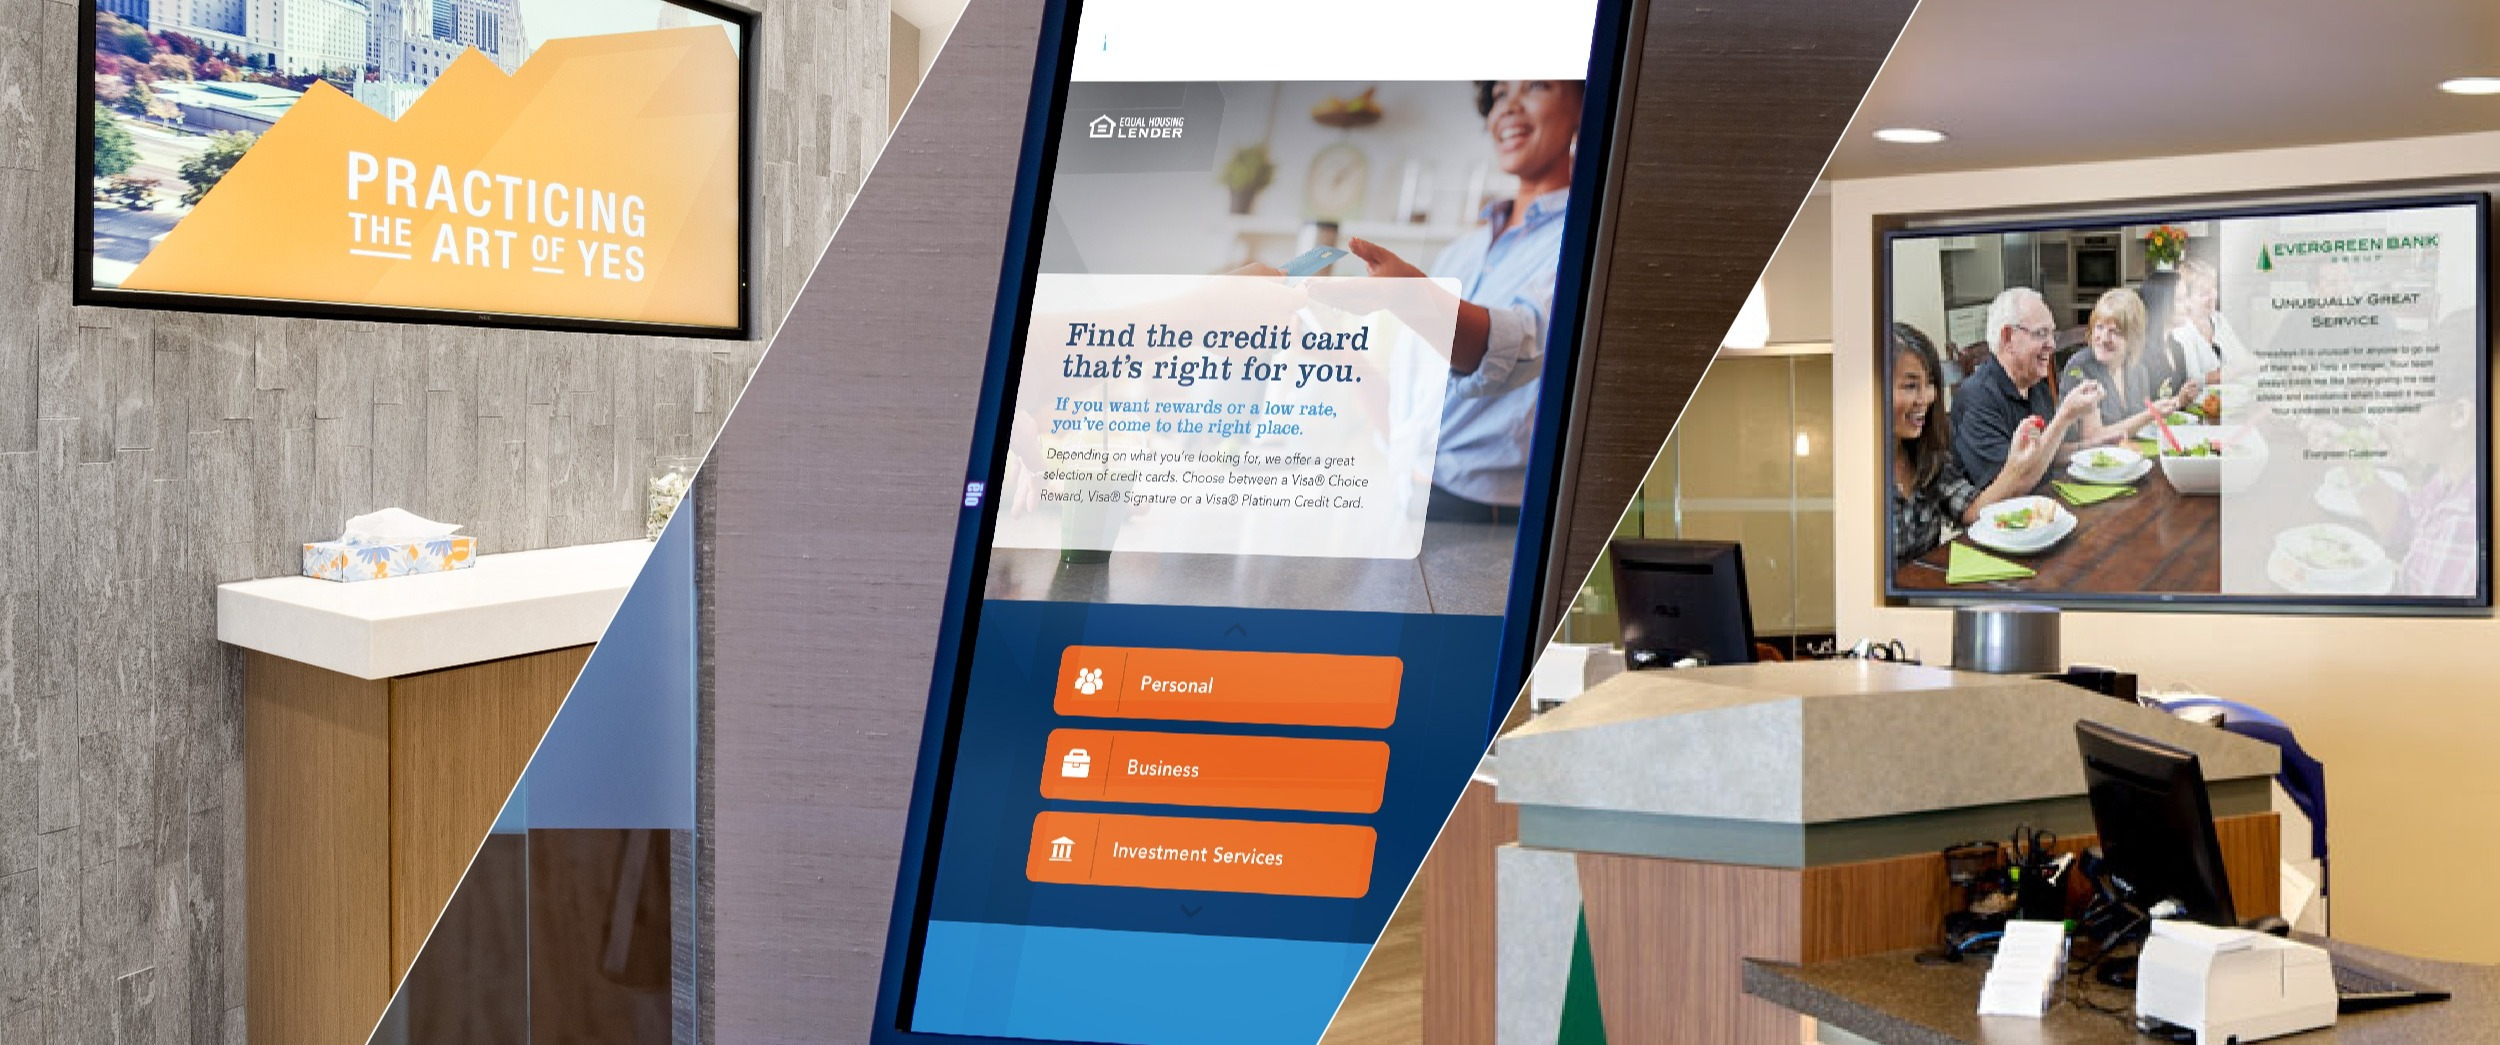 7 Ways Every Financial Institution Should Be Using Digital Signage